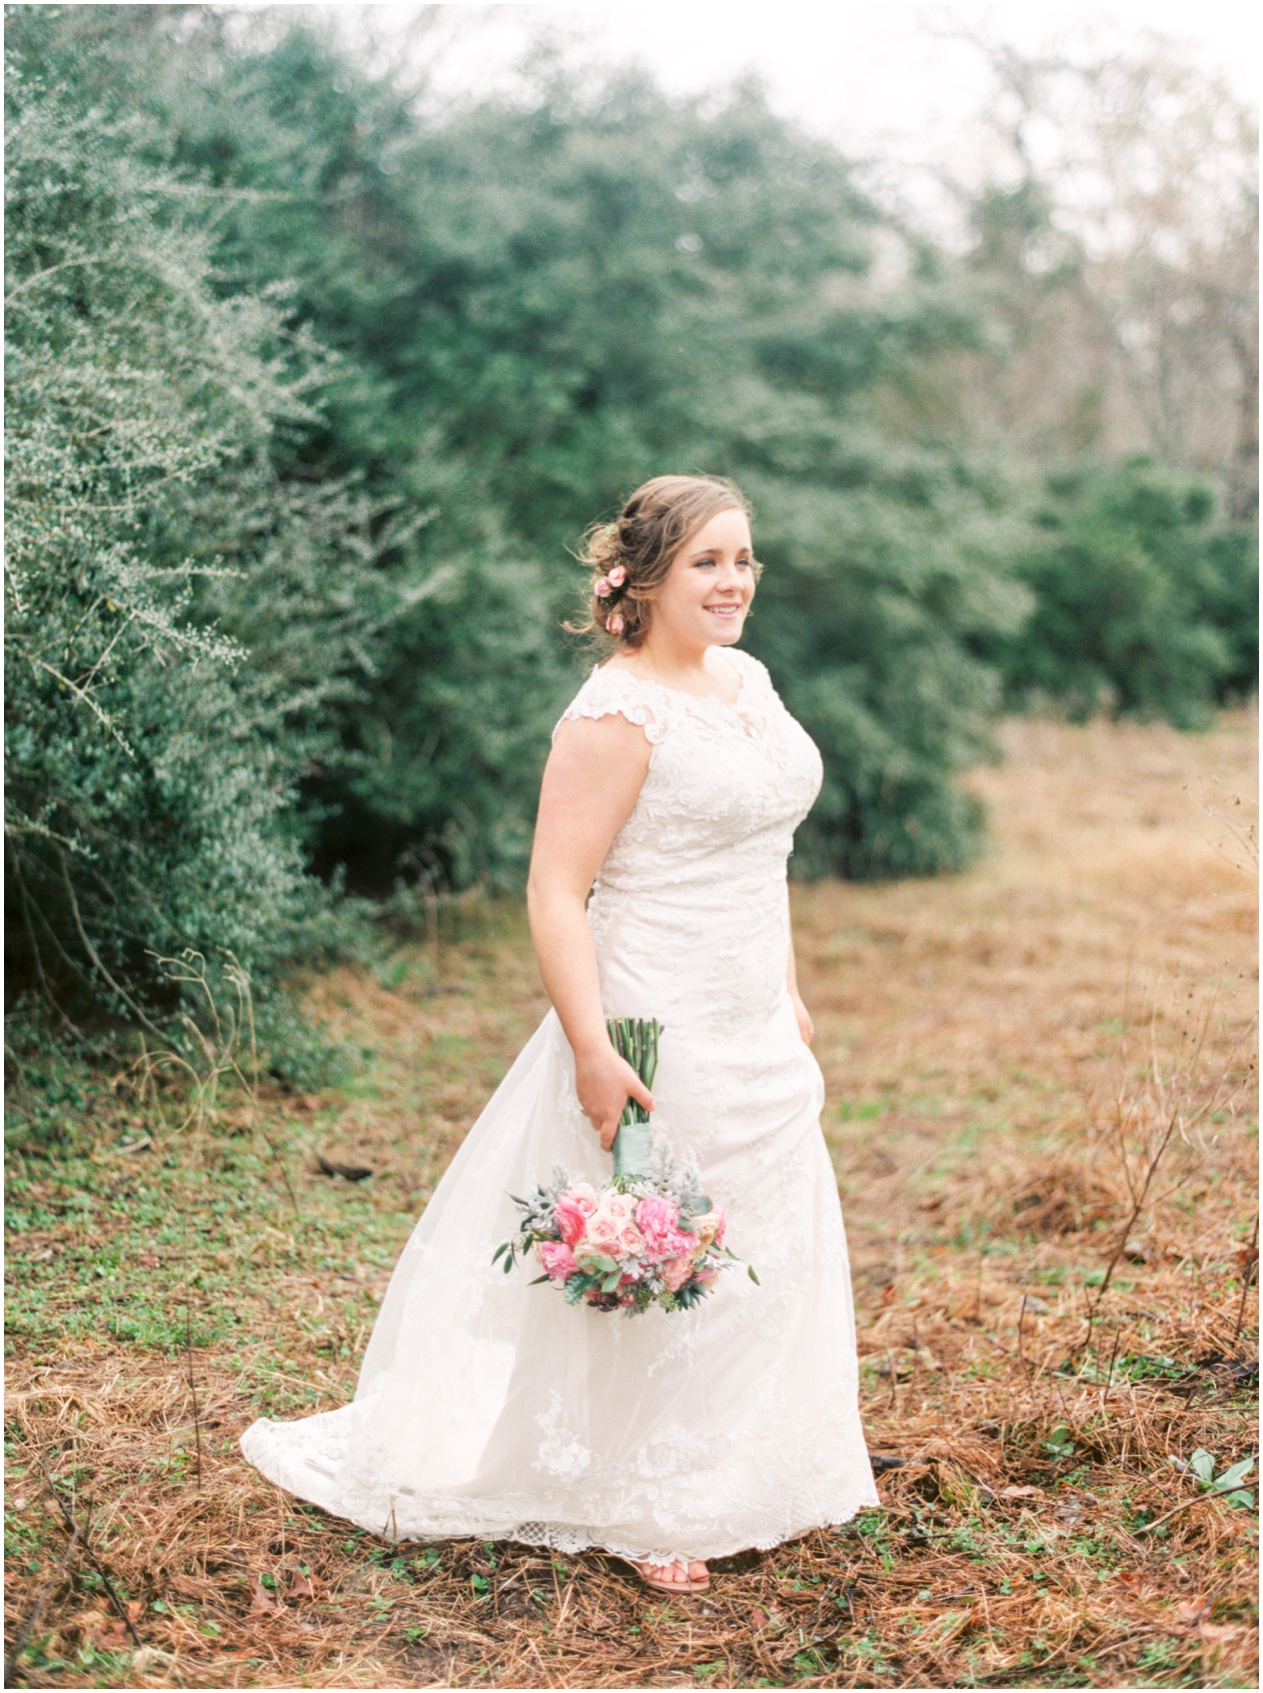 Sarah Best Photography - Claire's Bridals - The Amish Barn at Edge-36_STP.jpg